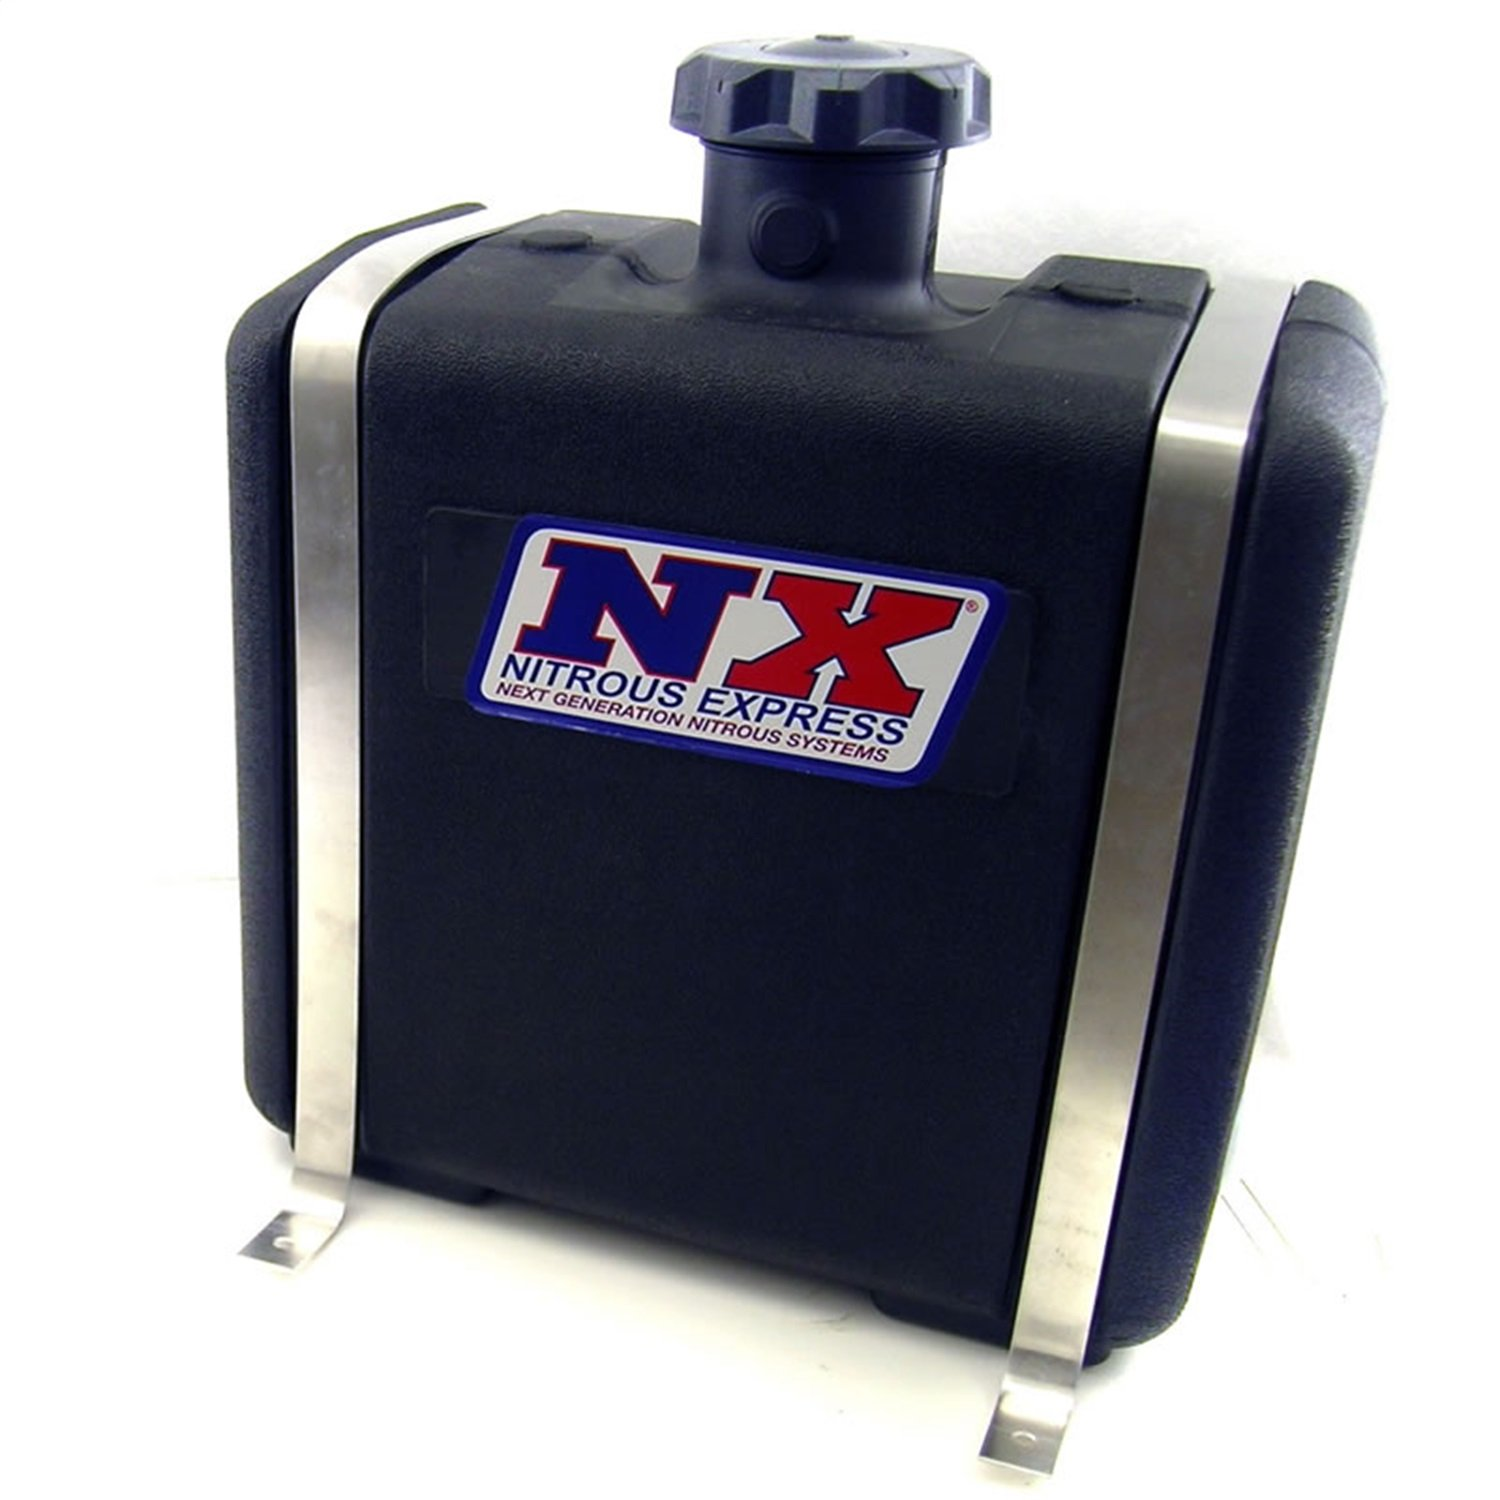 Nitrous Express 15051 7 gallon Reservoir with Bracket, Solenoid and Hose for Water-Methanol Injection System